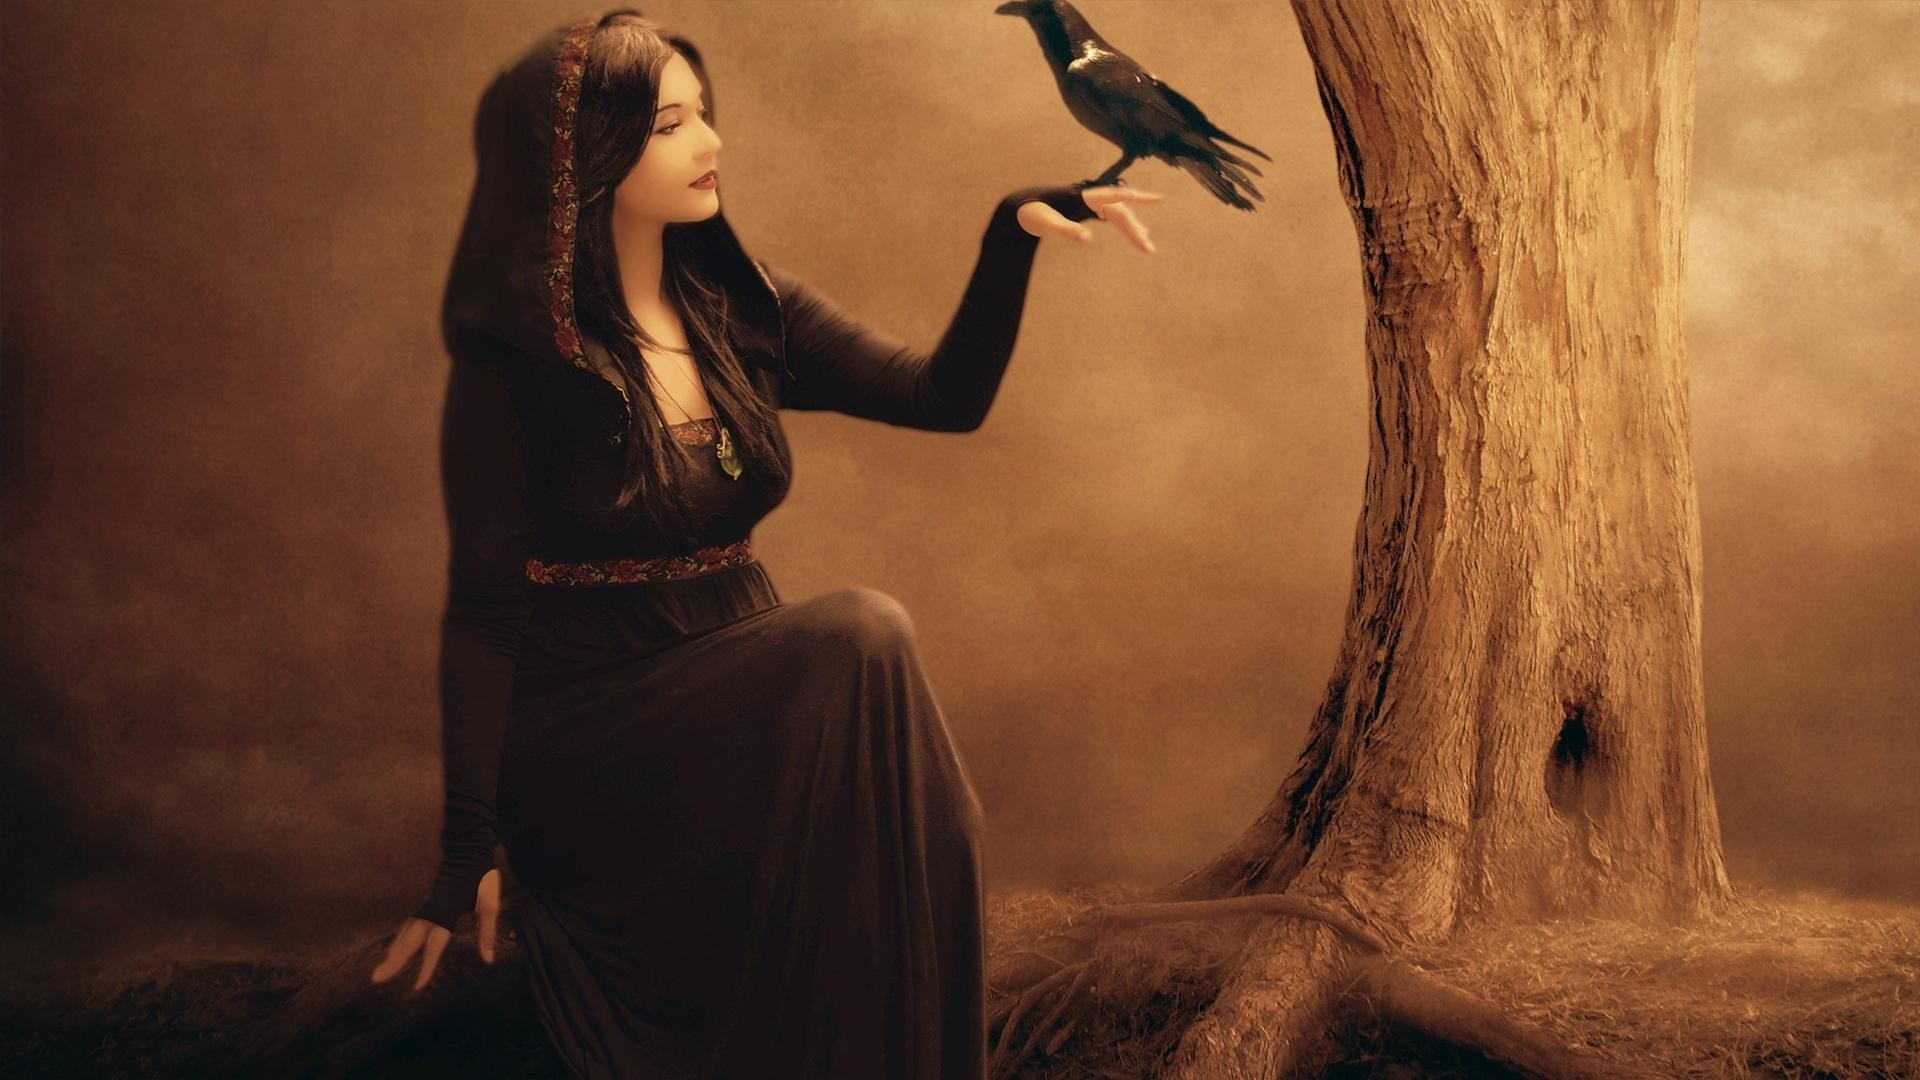 1920x1080 Download now full hd wallpaper gypsy fortune teller raven tree ...